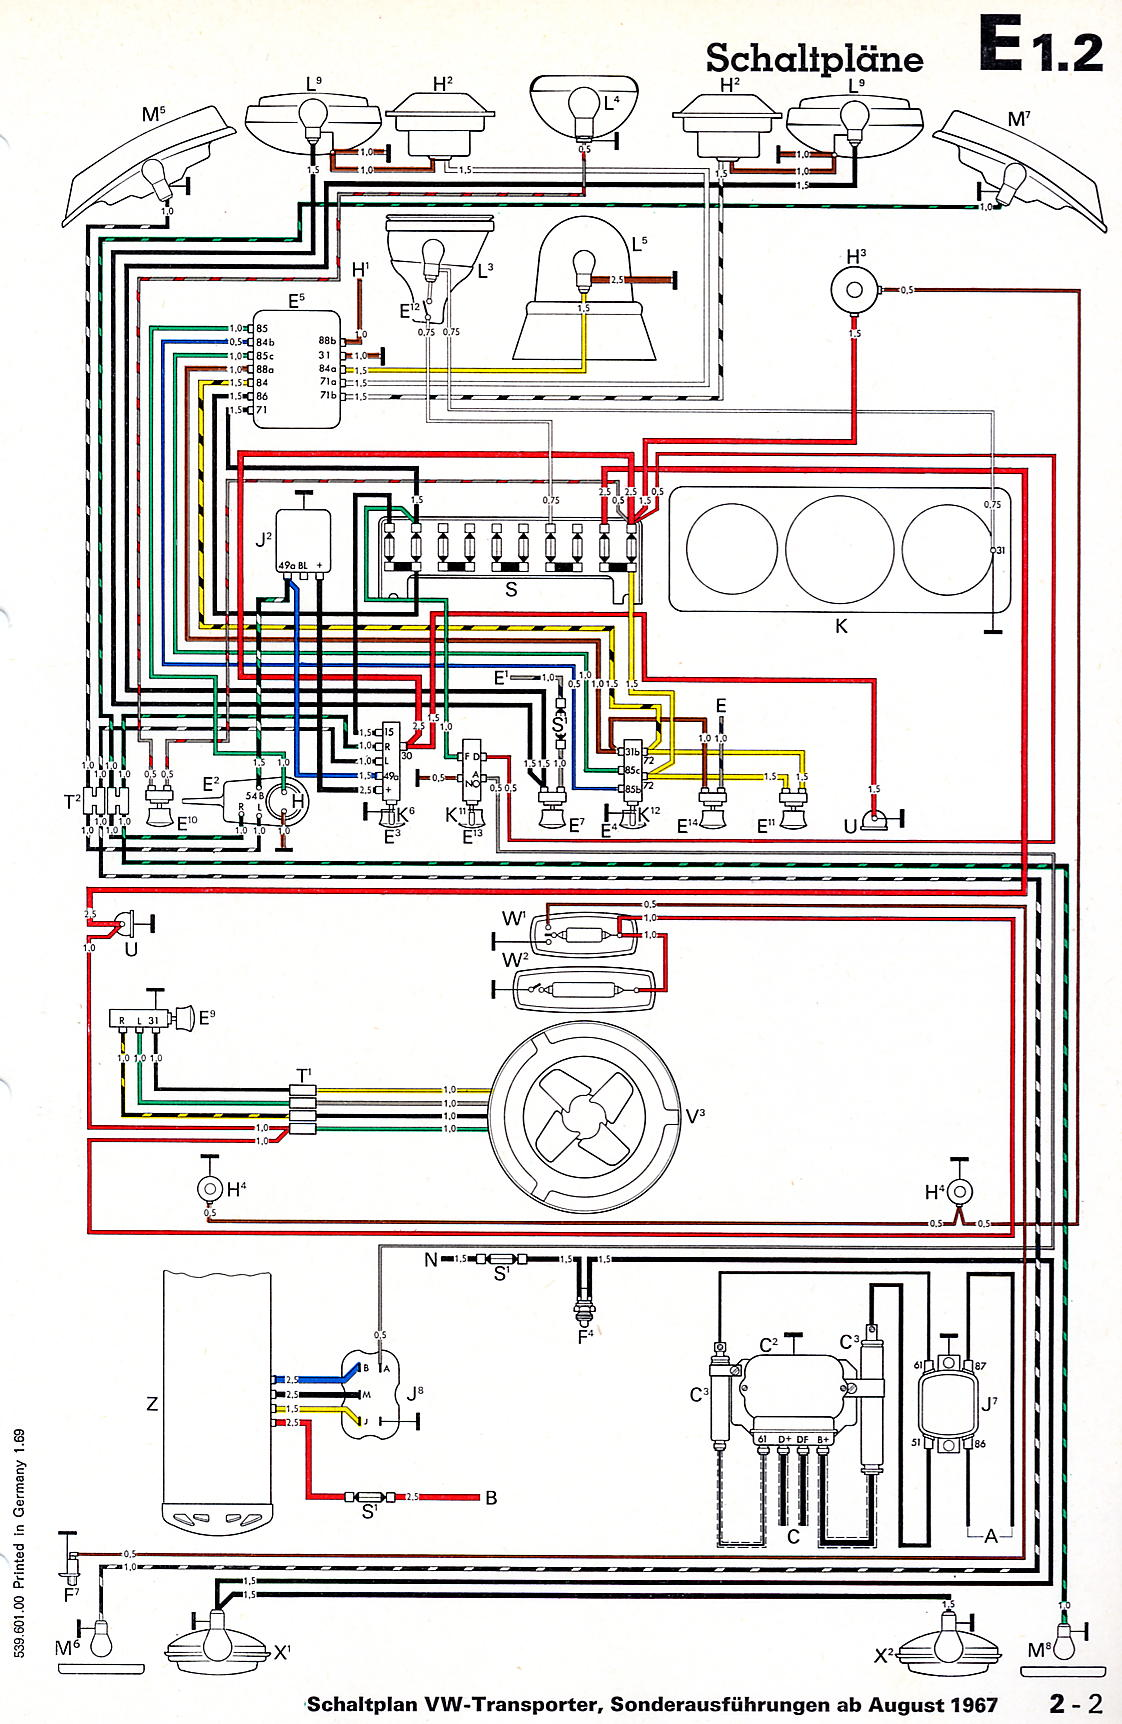 Transporter_from_August_1967_aditional_items vintagebus com vw bus (and other) wiring diagrams 72 vw bus wiring diagram at alyssarenee.co